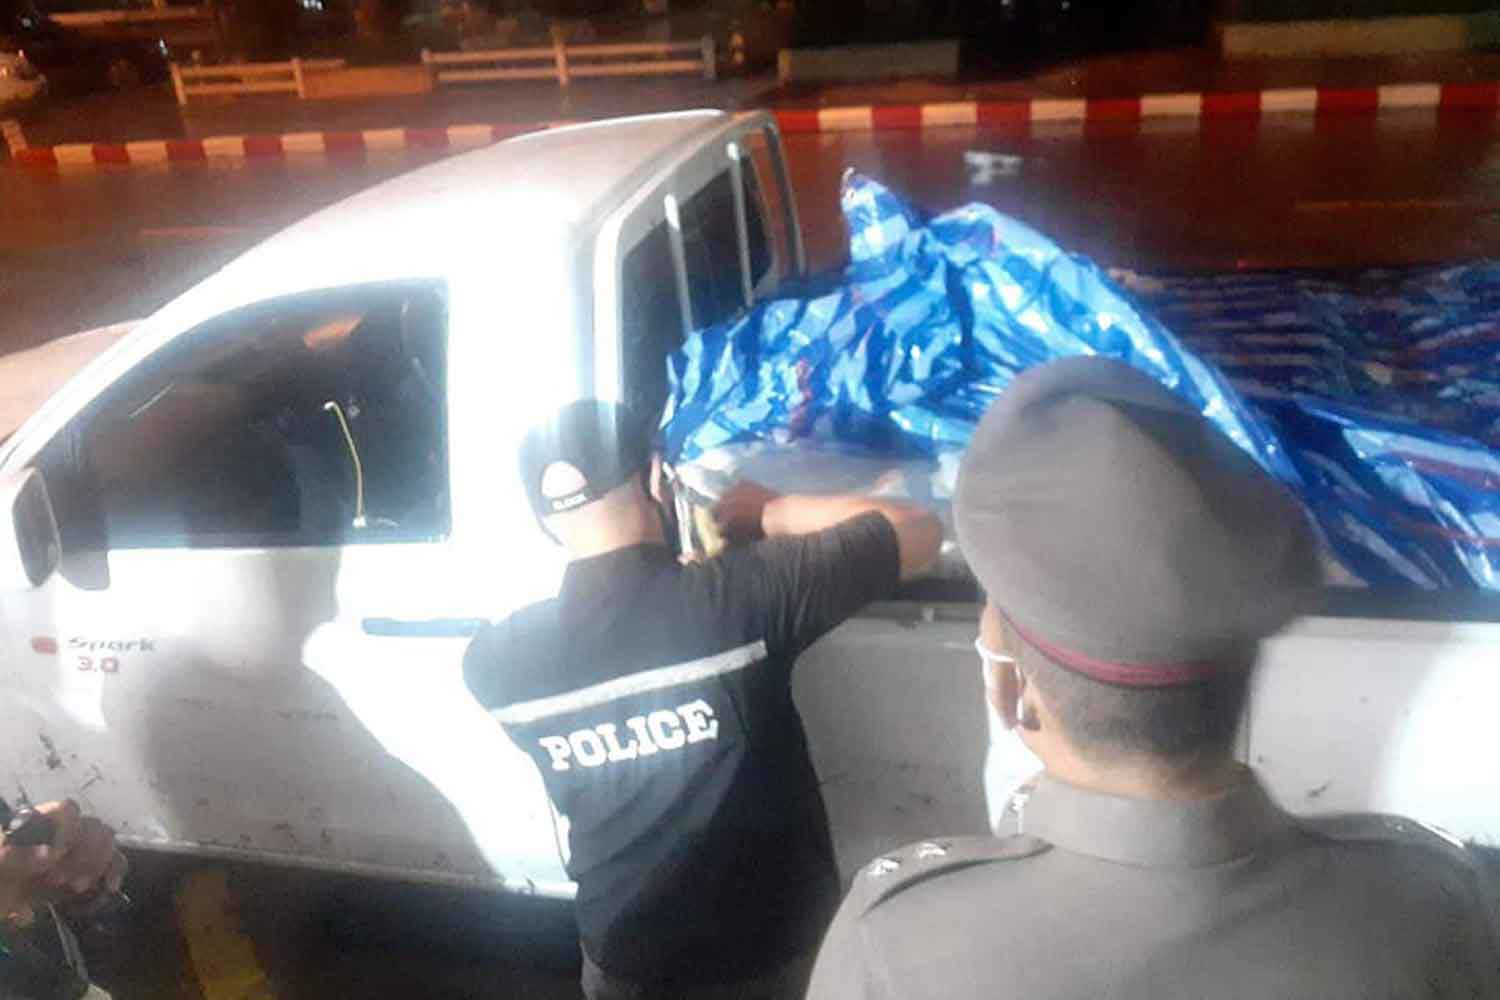 Police examine the cargo in the back of the pickup after a chase in Phra Nakhon Si Ayutthaya district, Ayutthaya province, on Tuesday morning. There were 30 sacks containing 6 million meth pills. (Photo: Sunthorn Pongpao)